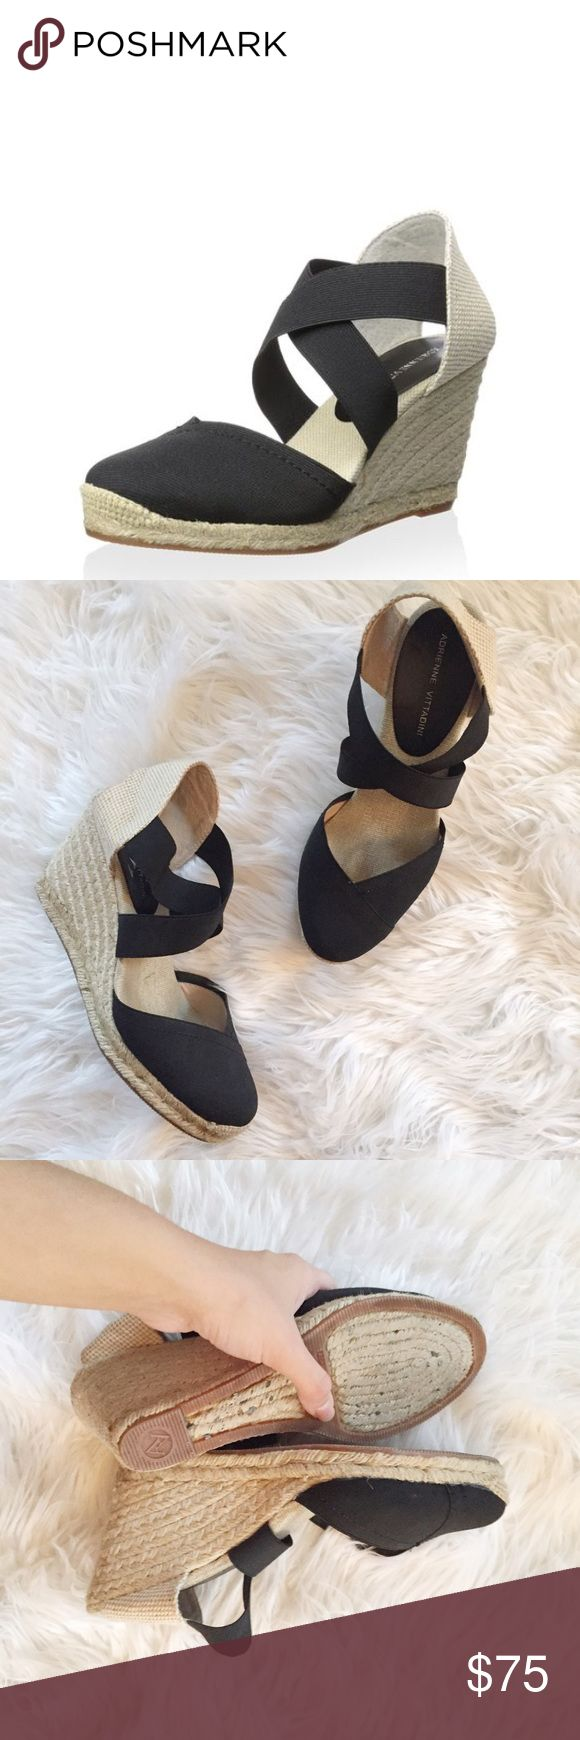 Adrienne Vittadini Black Espadrille Wedges Gorgeous Adrienne Vitadinni black espadrille wedges in excellent condition. Super cute! Perfect for spring and summer. No trades. 7fftu Adrienne Vittadini Shoes Wedges